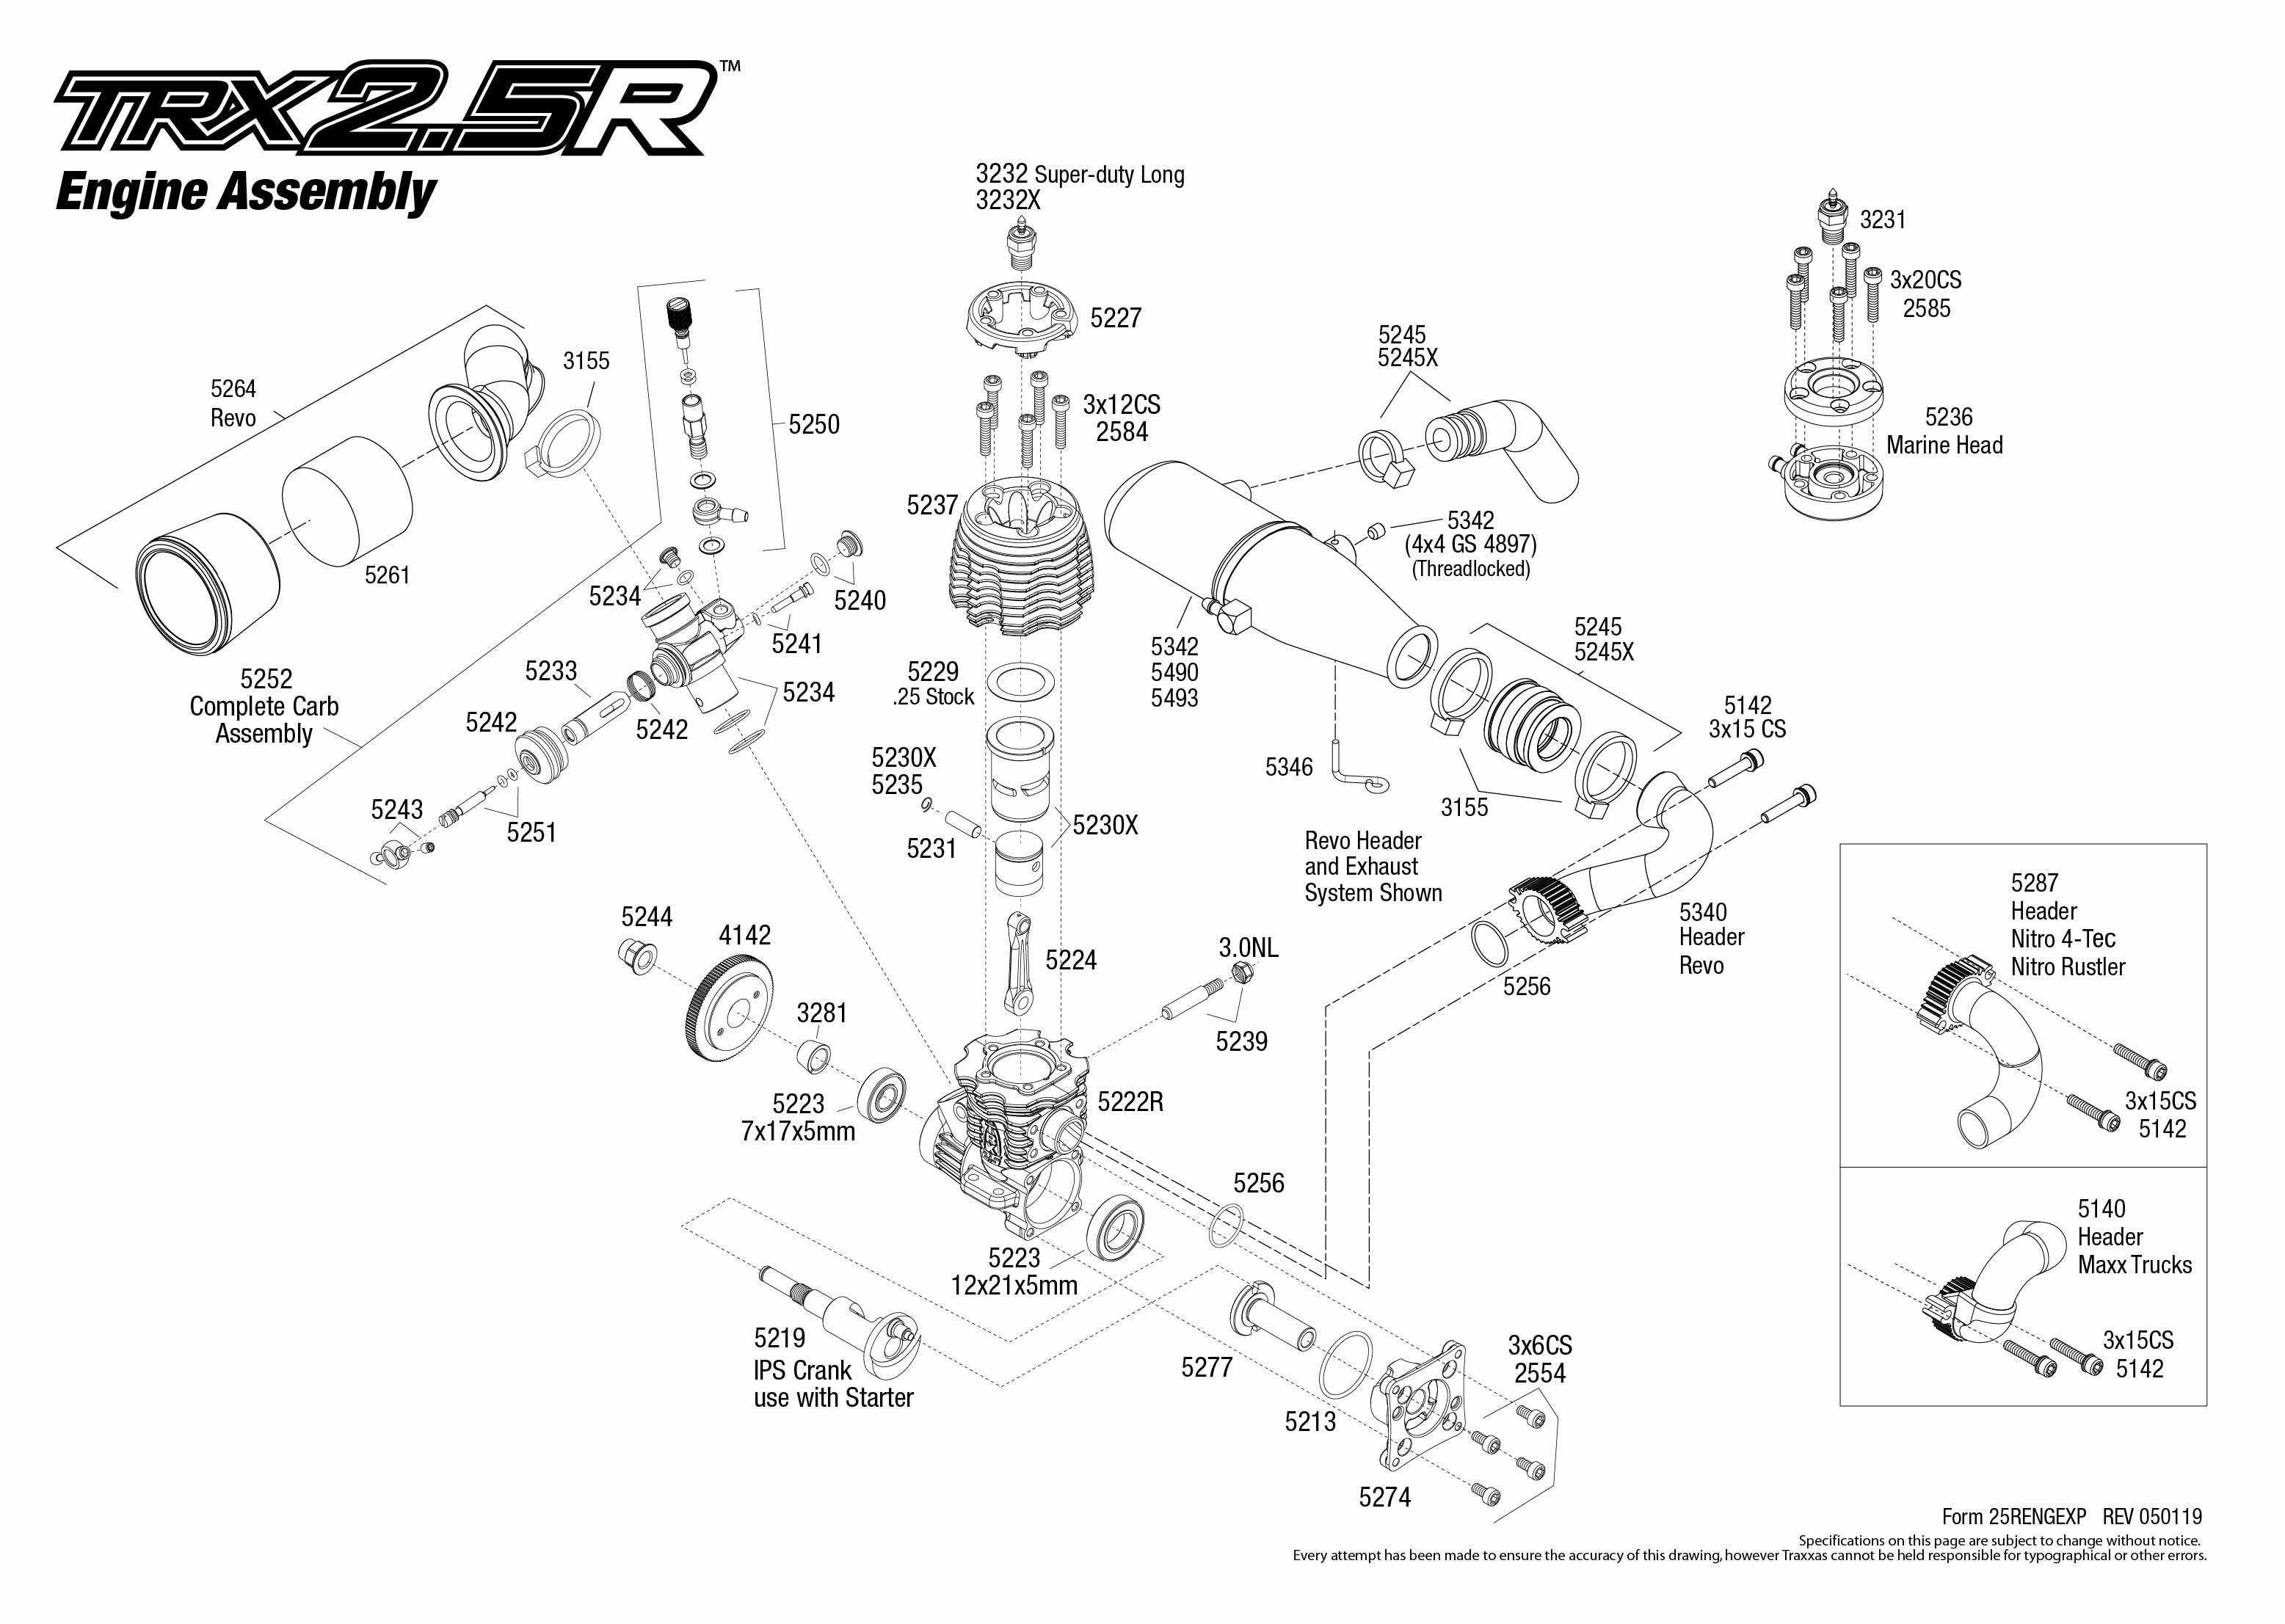 traxxas 3 3 engine diagram trx 2.5r (5207r) engine assembly | traxxas